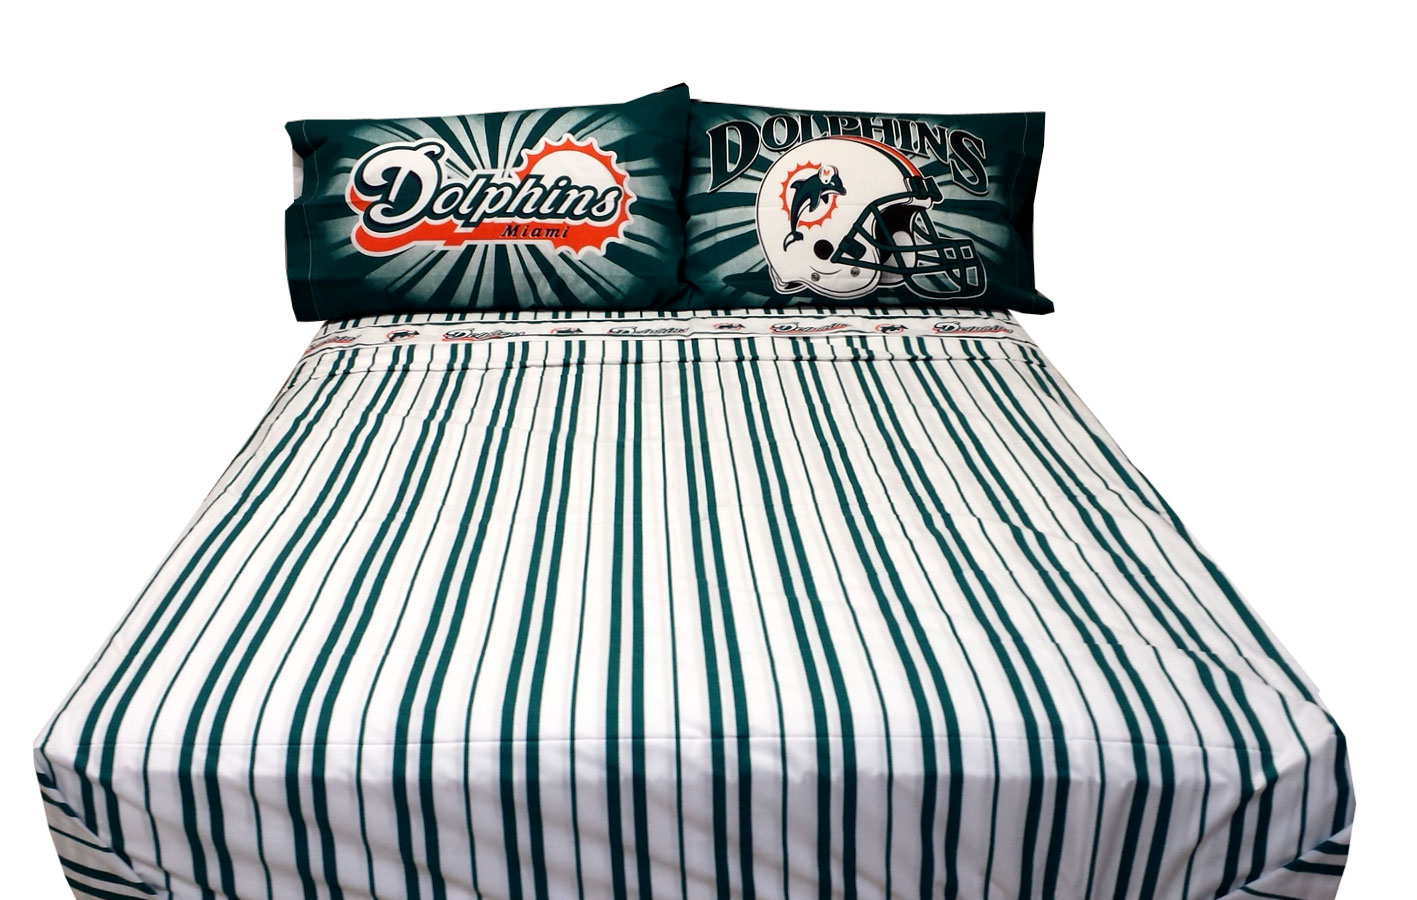 Curtains Ideas New Orleans Saints Curtains : NFL Football Miami Dolphins Bed  Sheet Set   4pc